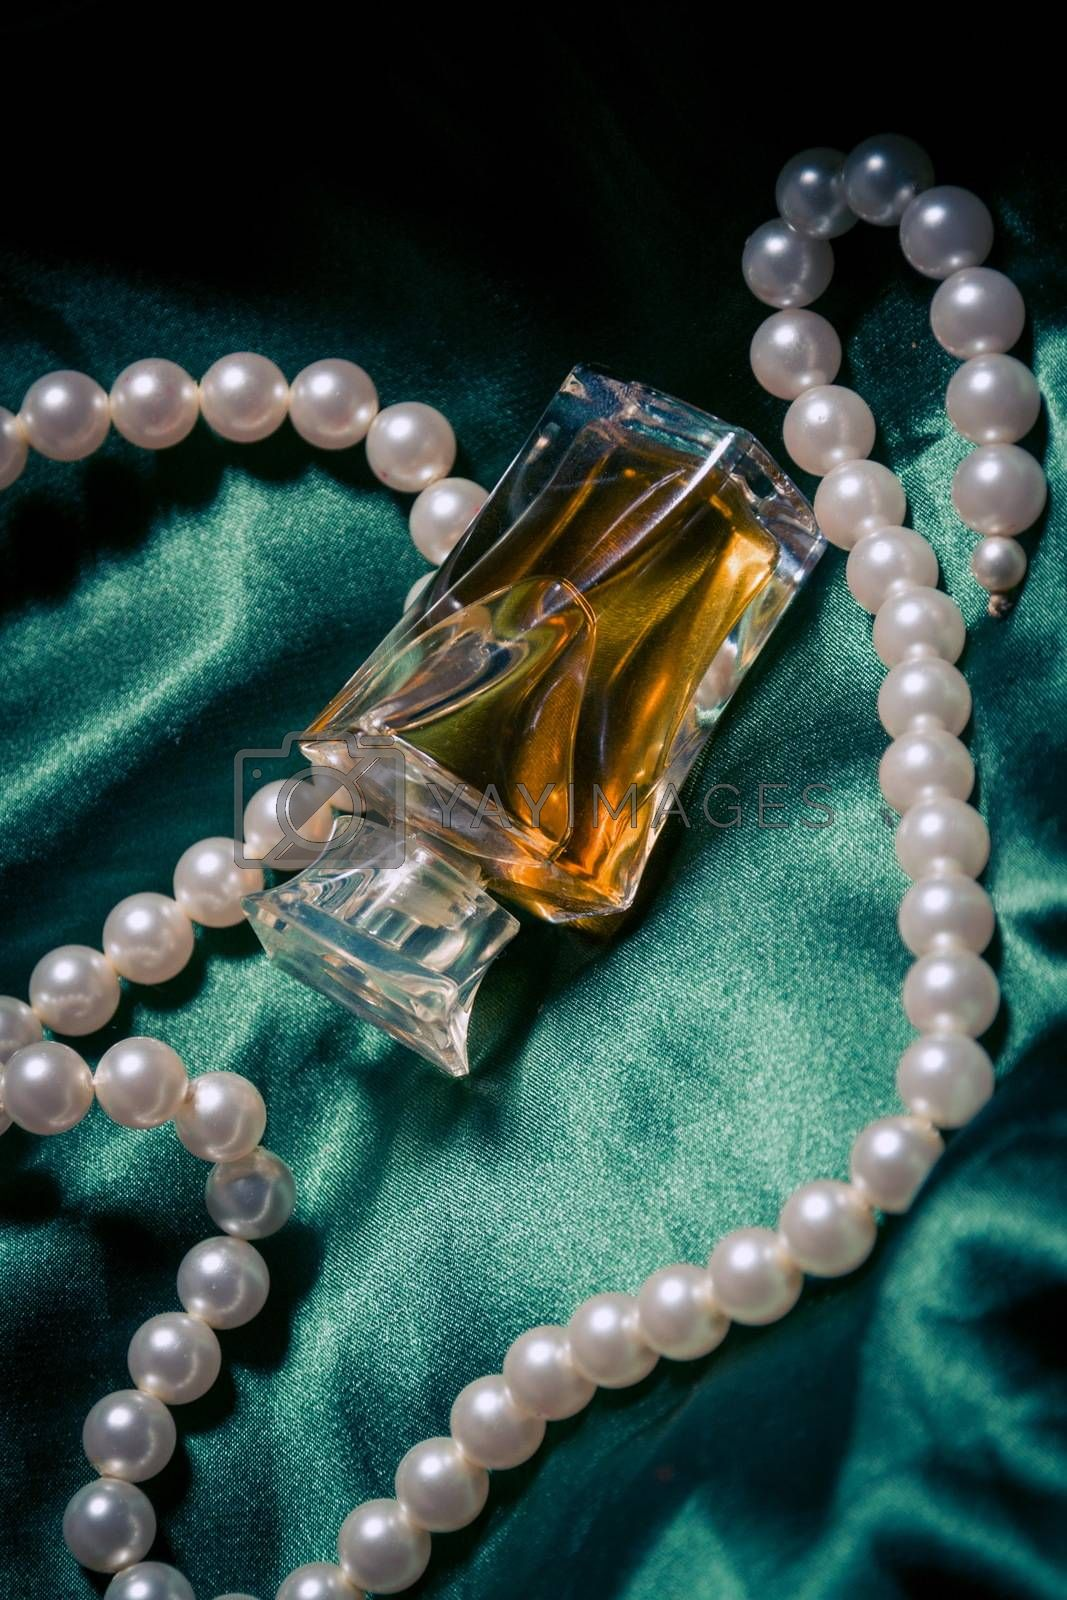 Pearls and perfume closeup on the silk